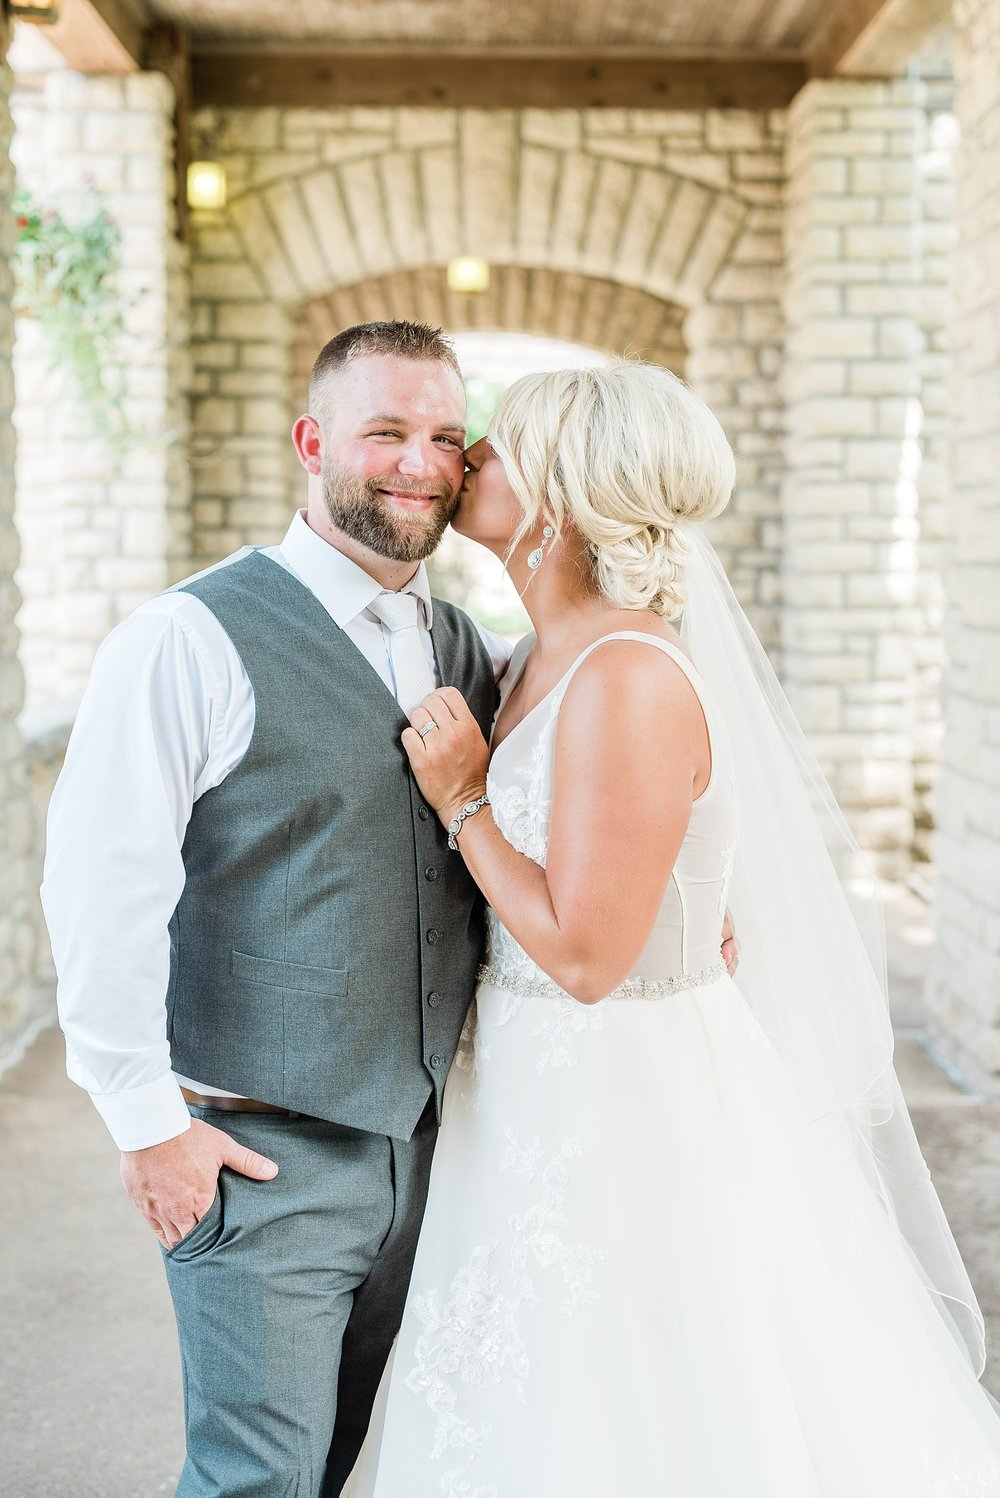 Rose Gold, White, and Greenery High Class Summer Wedding at The Millbottom in Downtown Jefferson City by Kelsi Kliethermes Photography_0025.jpg